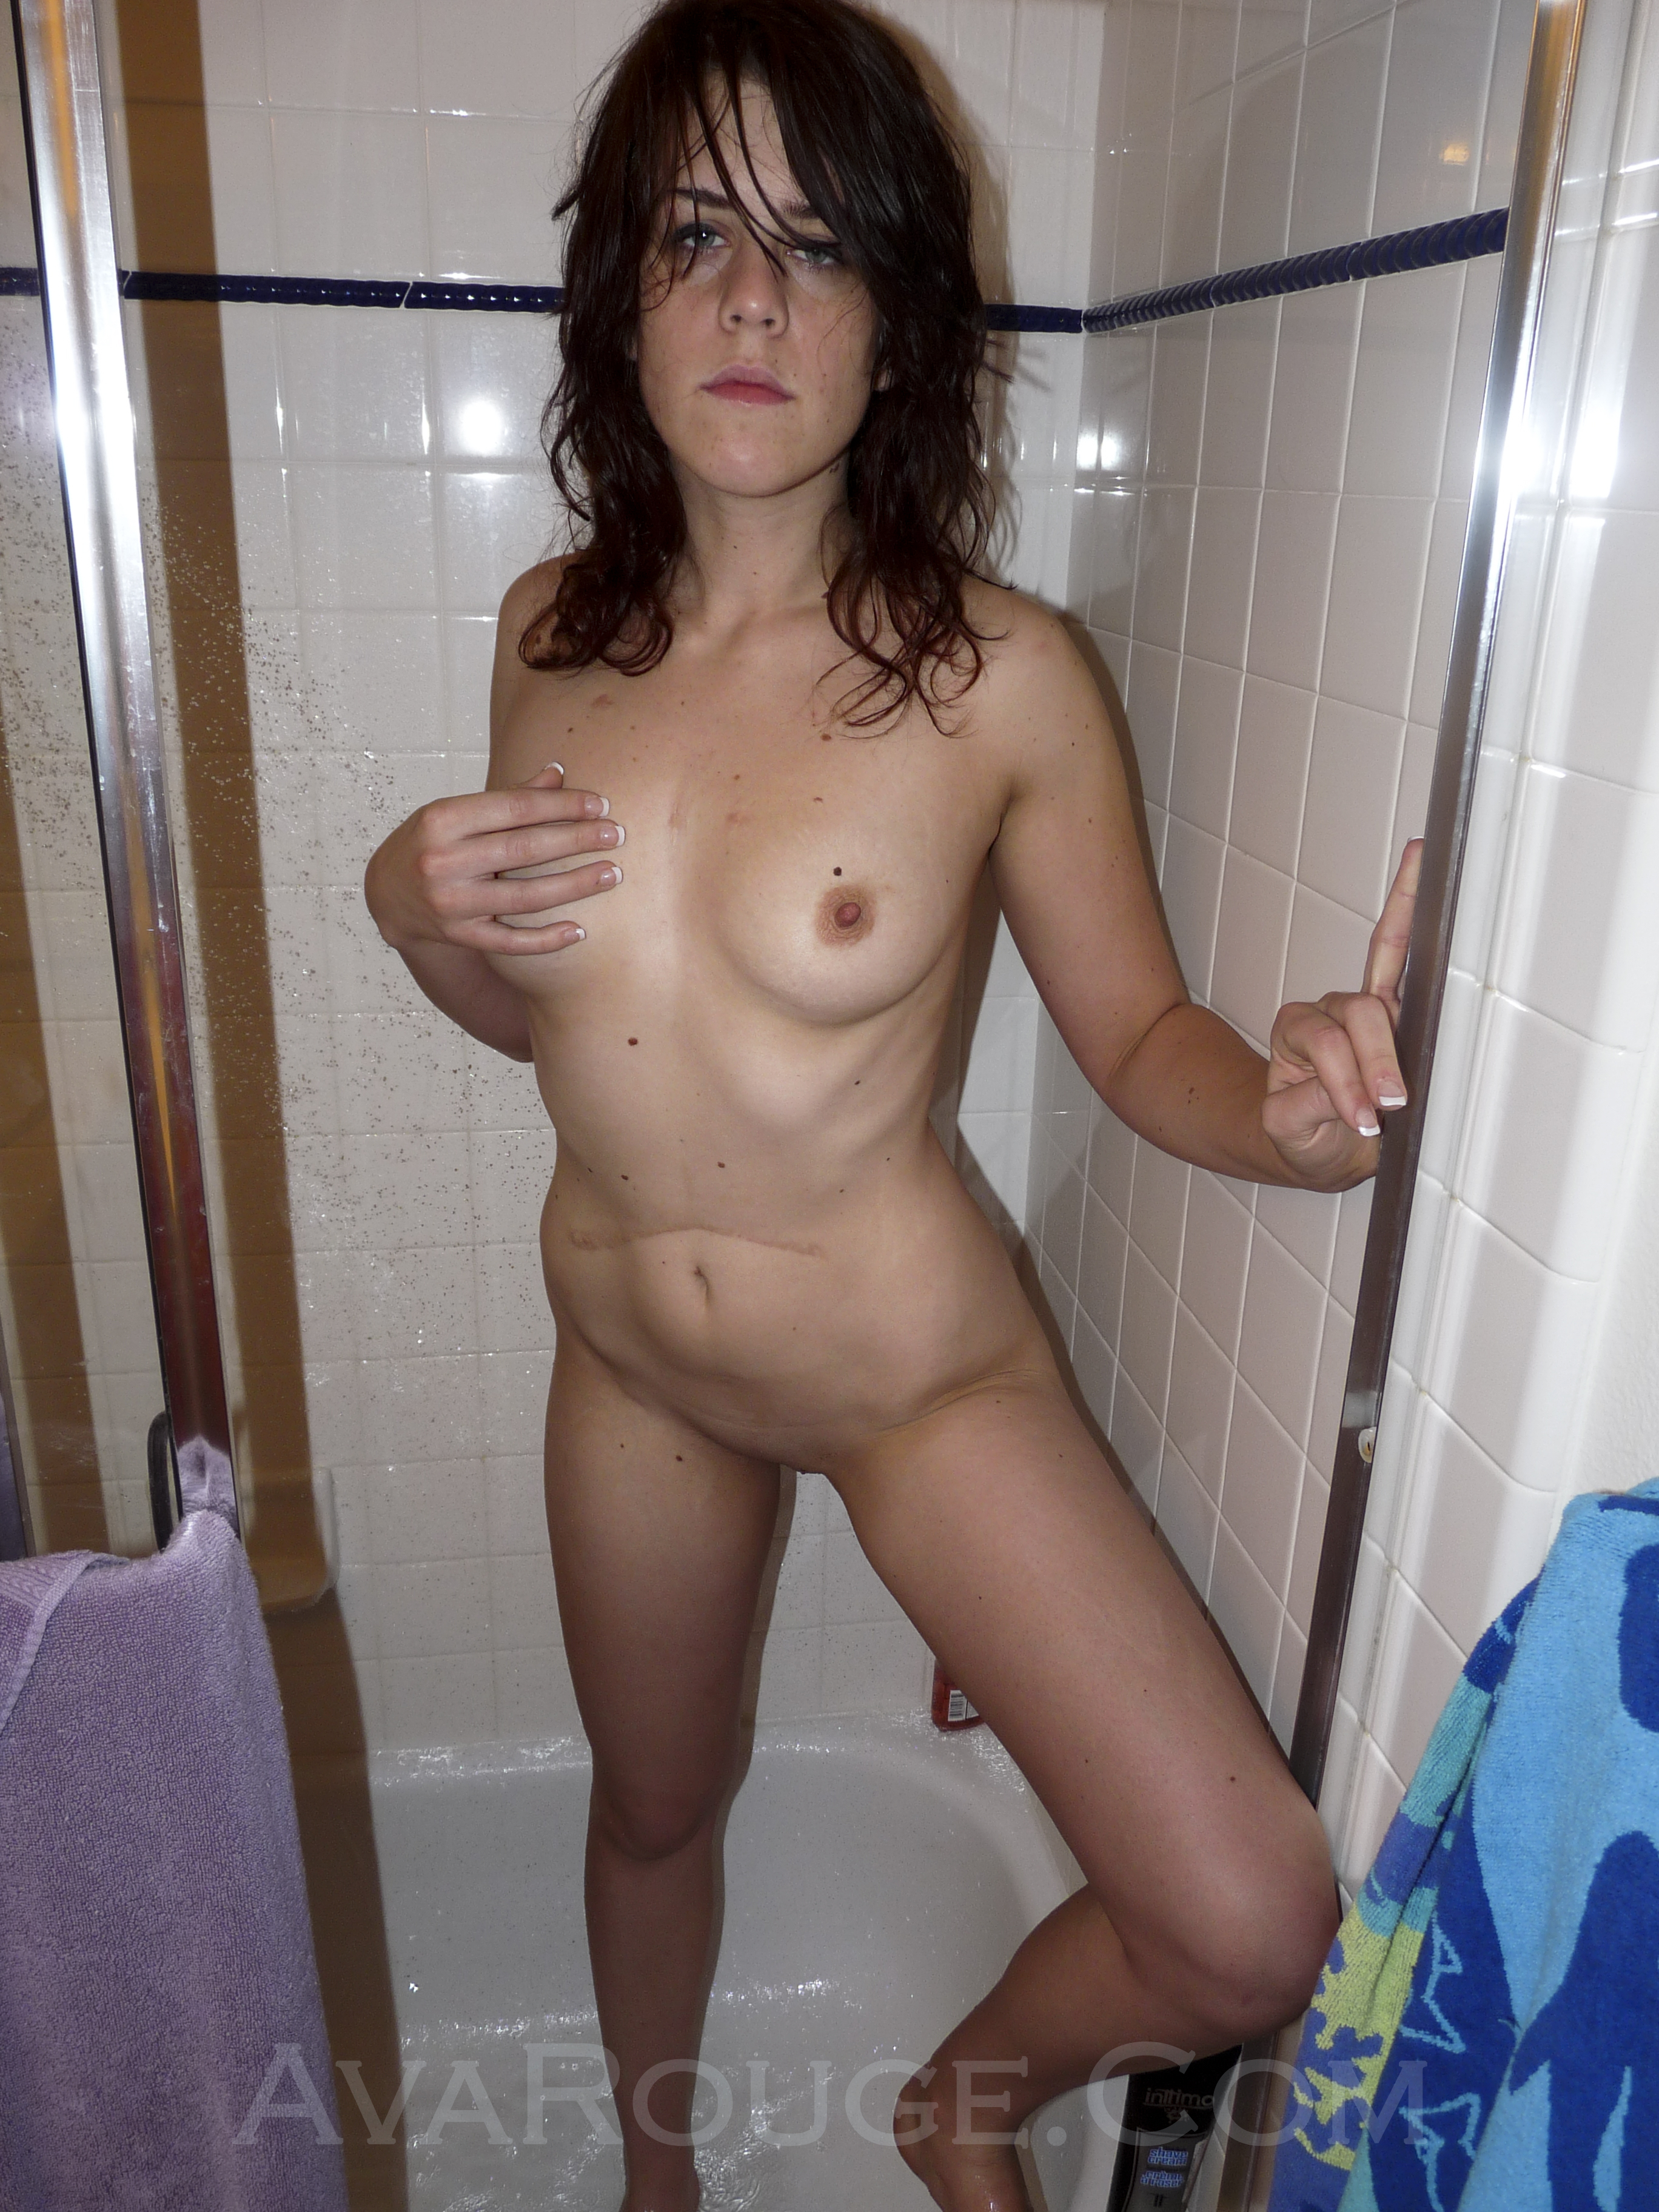 Opinion the Nude amish women photos for